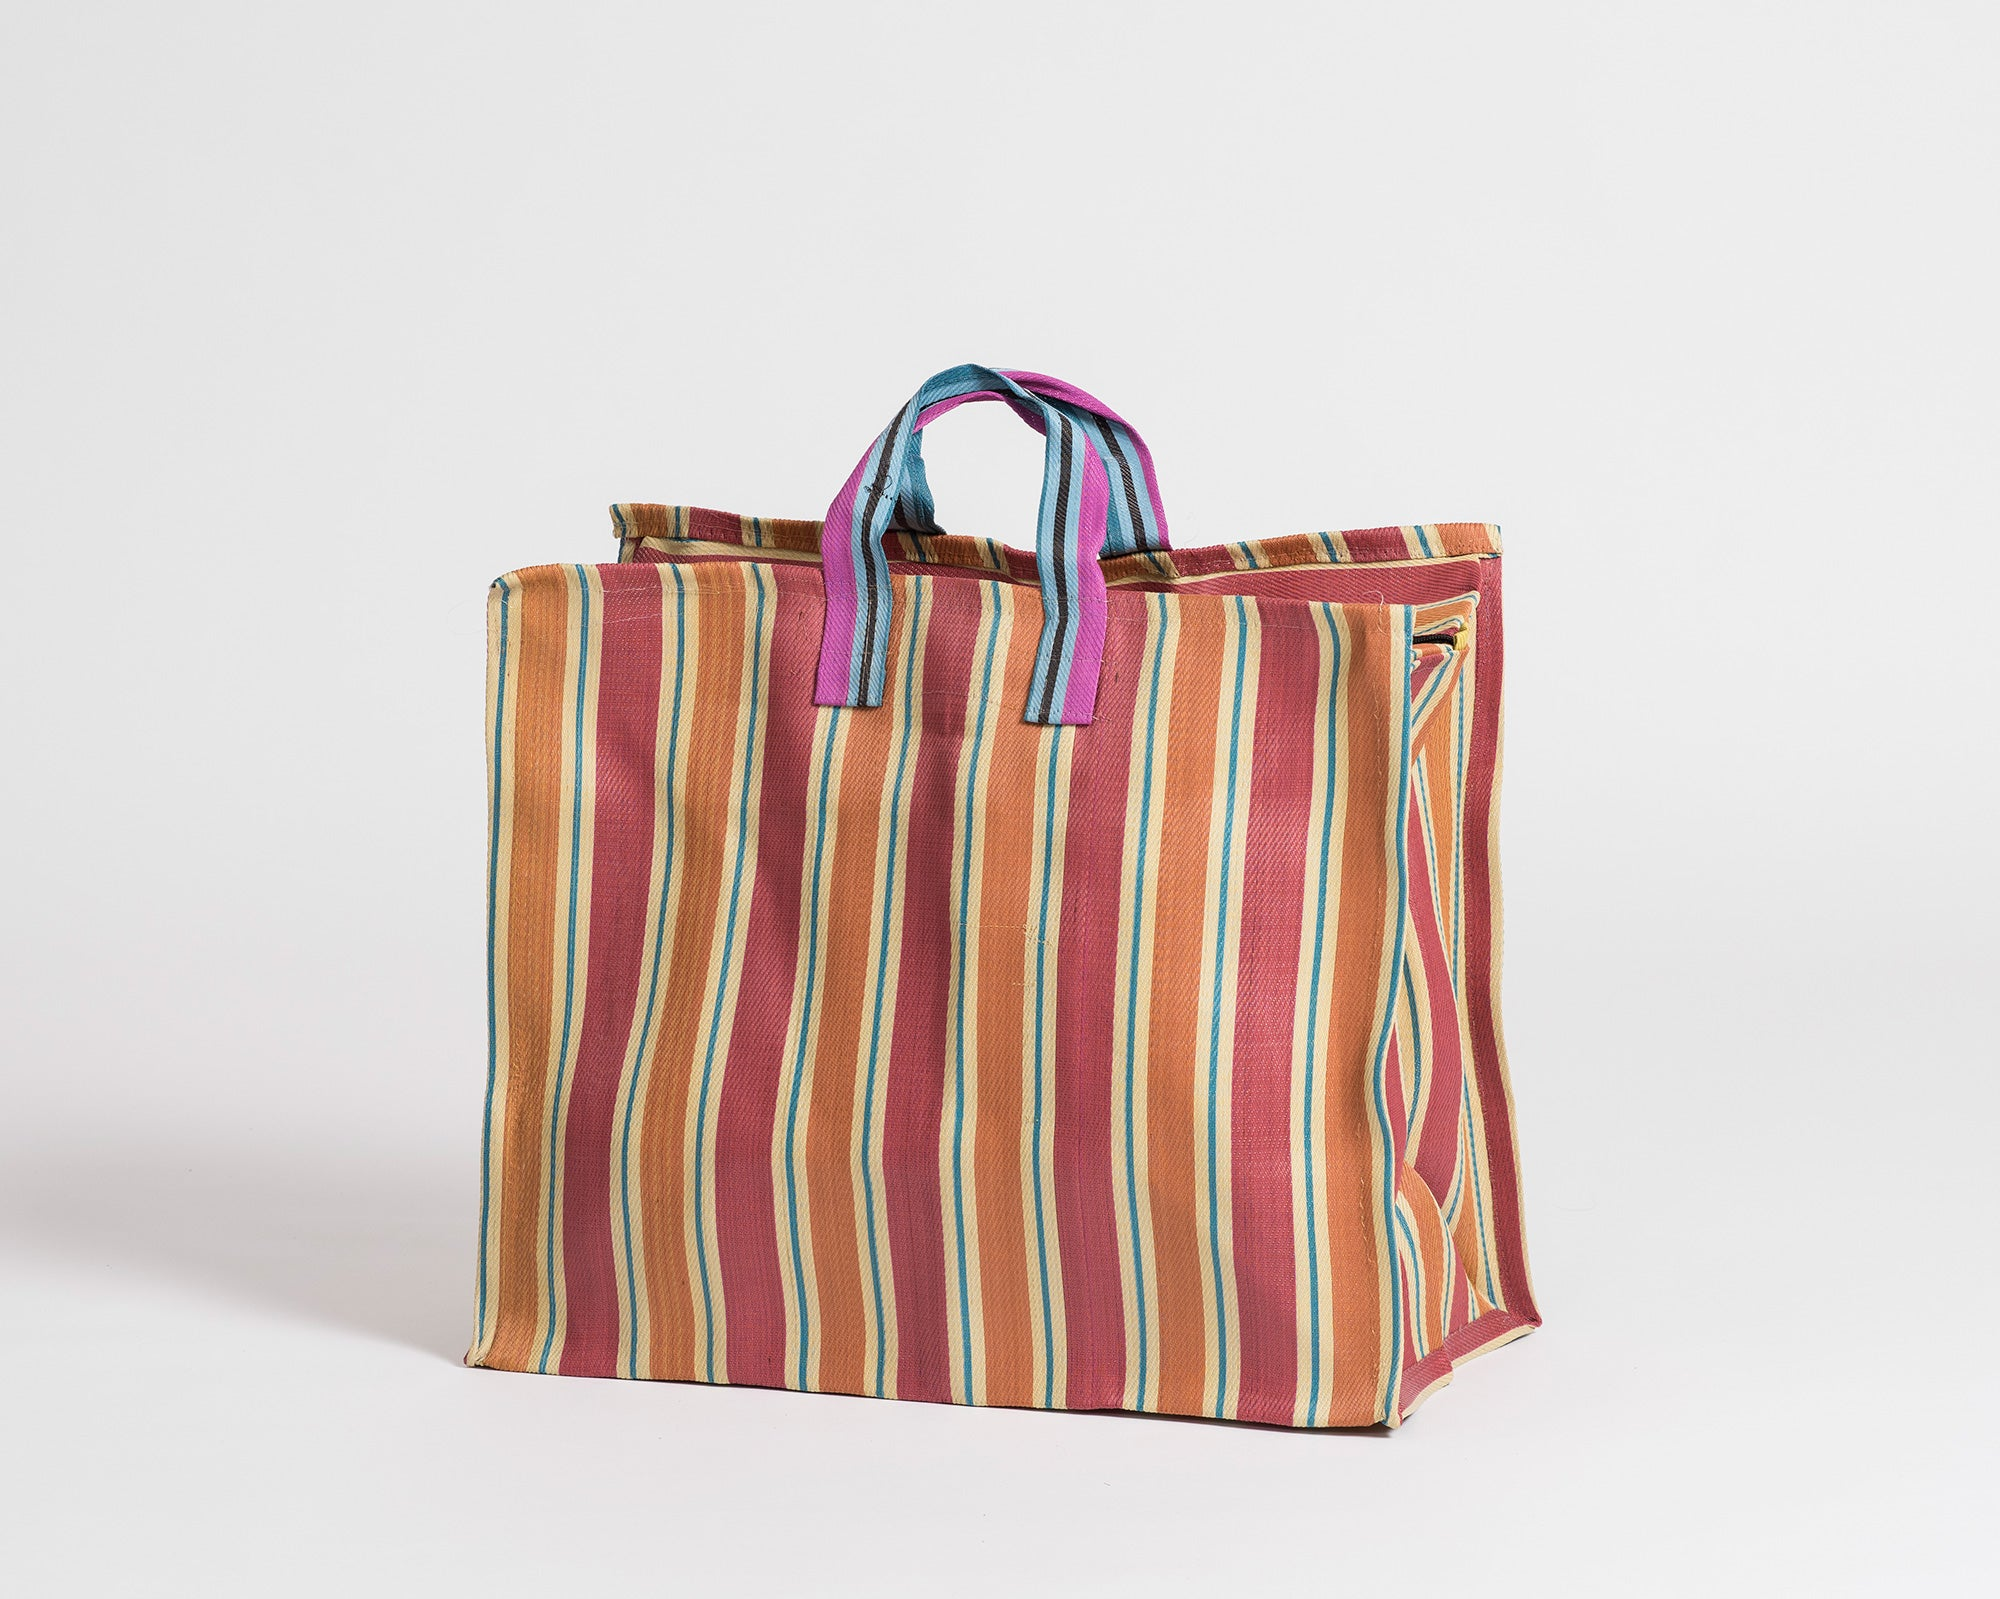 Day-to-Day Bag - Medium 002